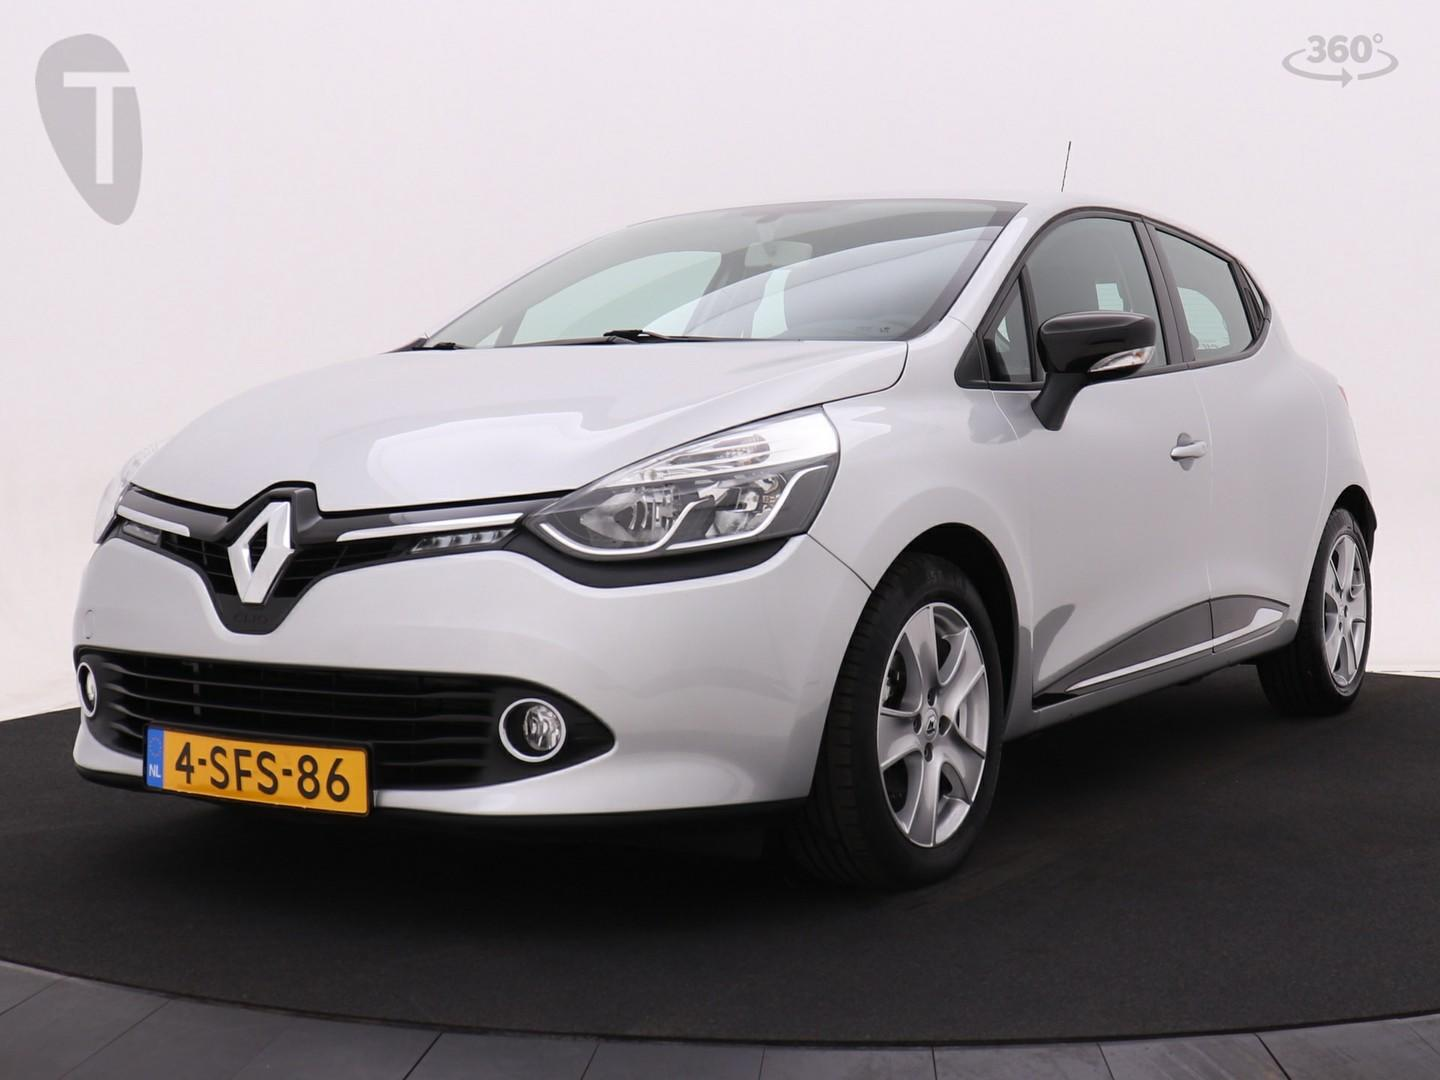 Renault Clio 90pk tce expression airco i cruise control i navigatie